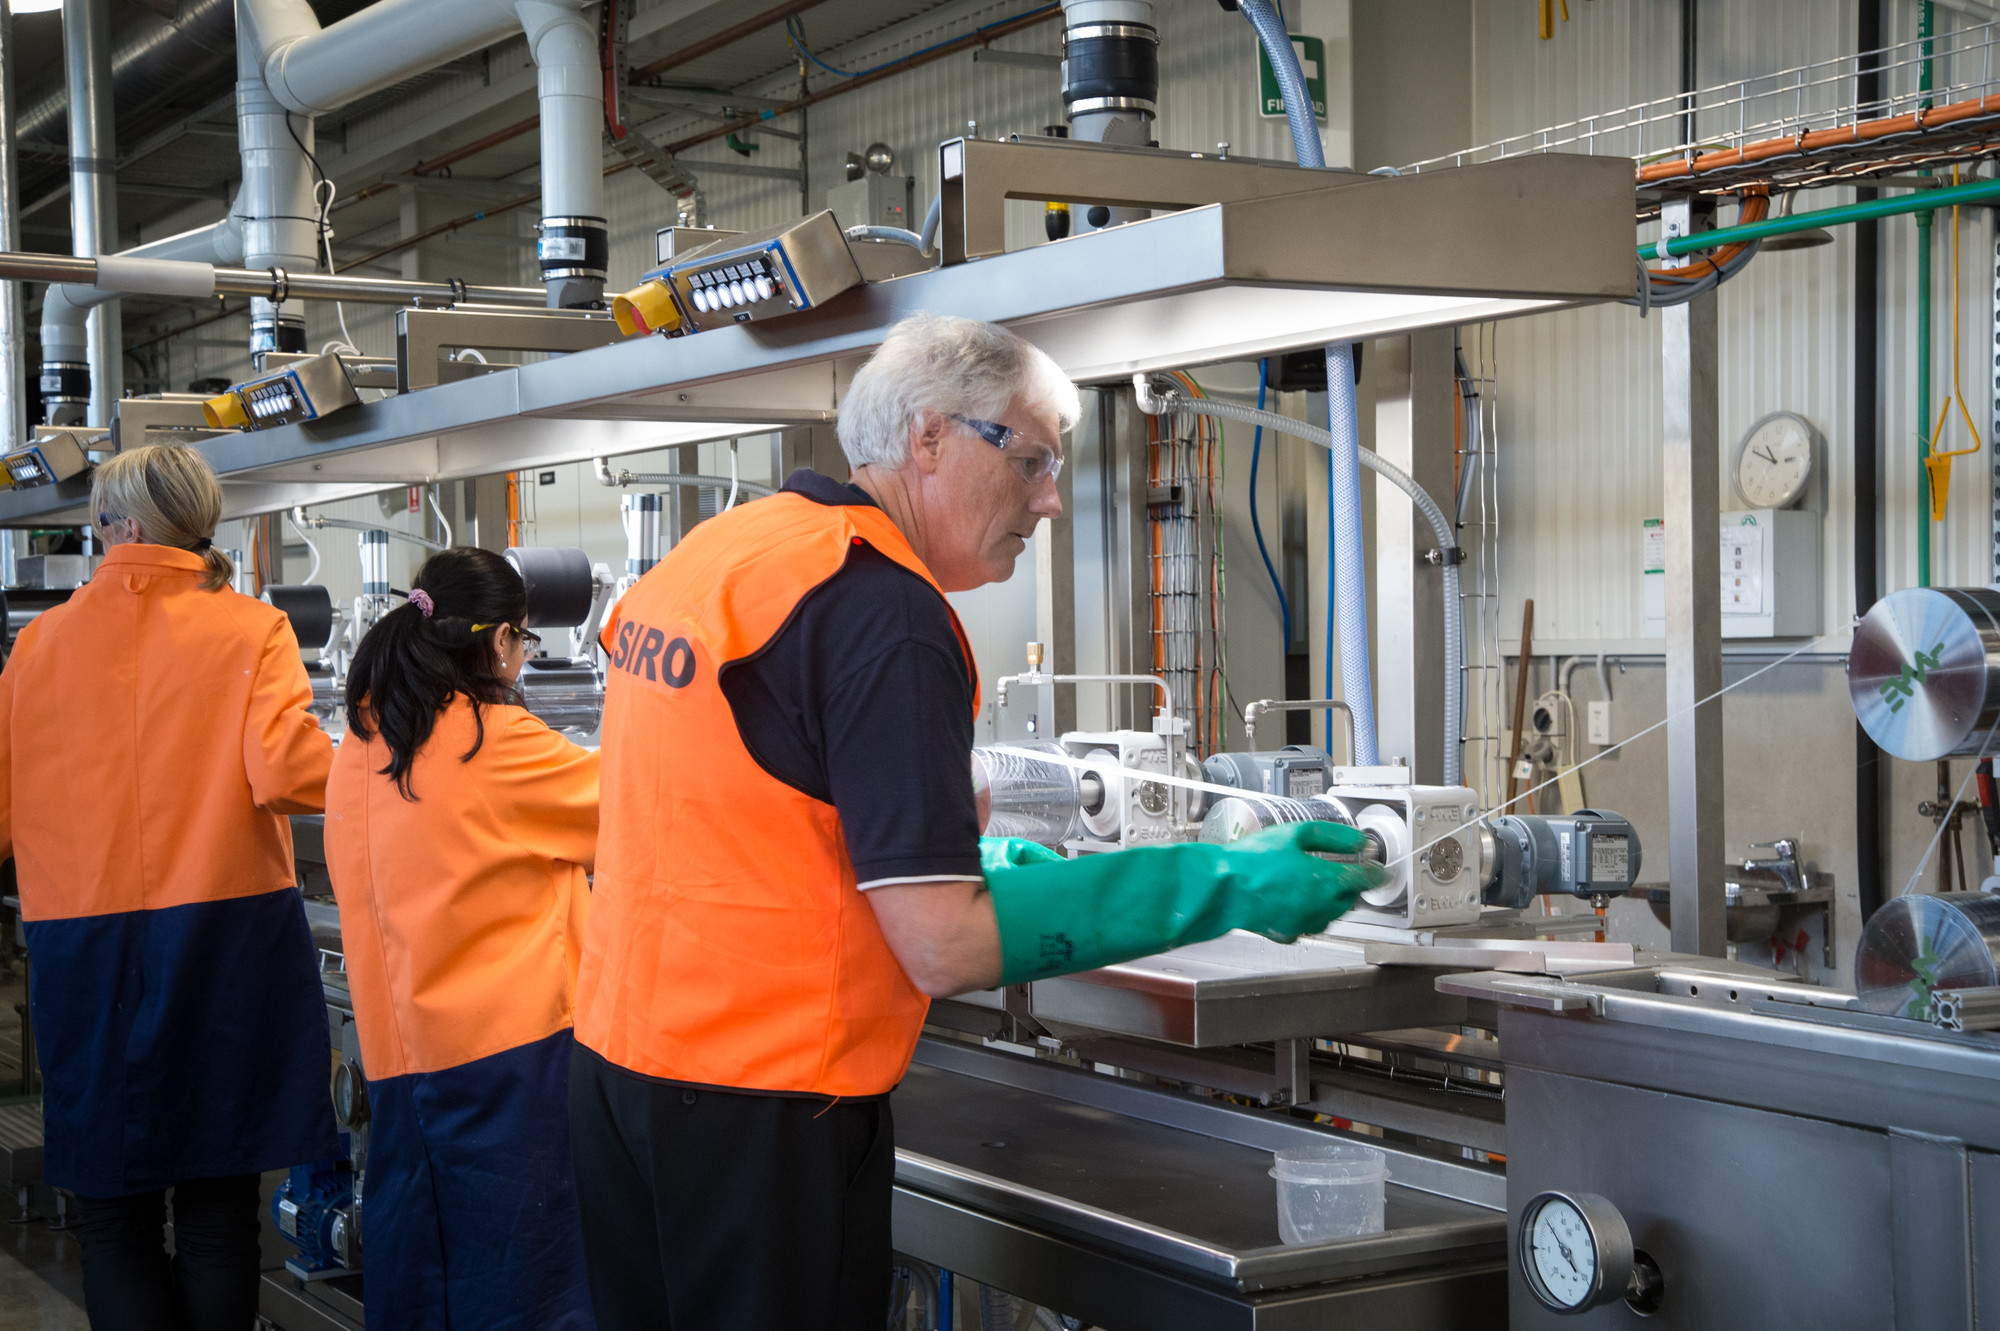 Scientists wearing protective glasses and hi-vis vests working with factory equipment.